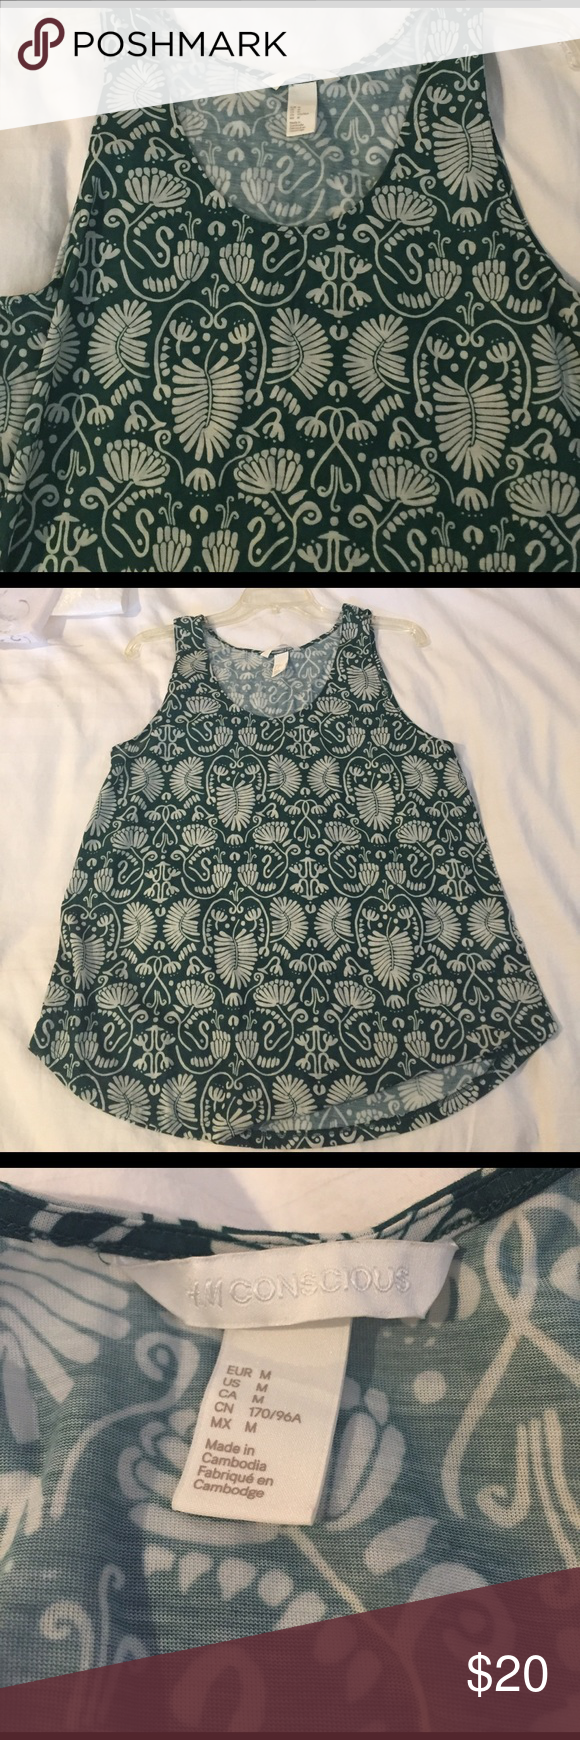 New Green Tank Top New Green tank top NWOT. Medium size  from JCP (brand is Conscious)  but it's really loose fitting. I'd say it would work as a Large also! Soft material and a nice green and white color perfect for the warm days. It's long enough to be paired with leggings also😀 jcpenney Tops